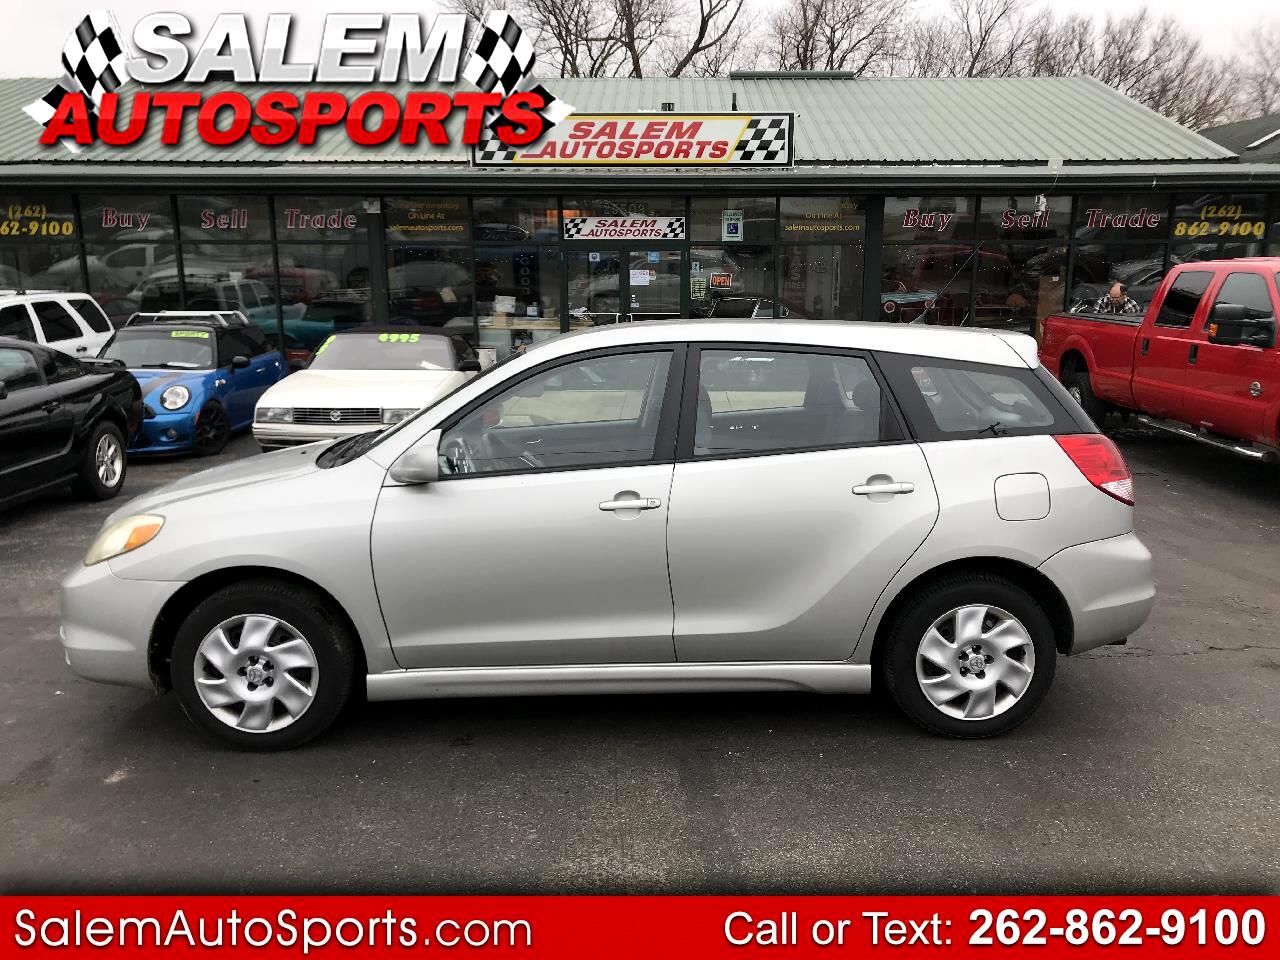 2003 Toyota Matrix 5dr Wgn Std Auto (Natl)